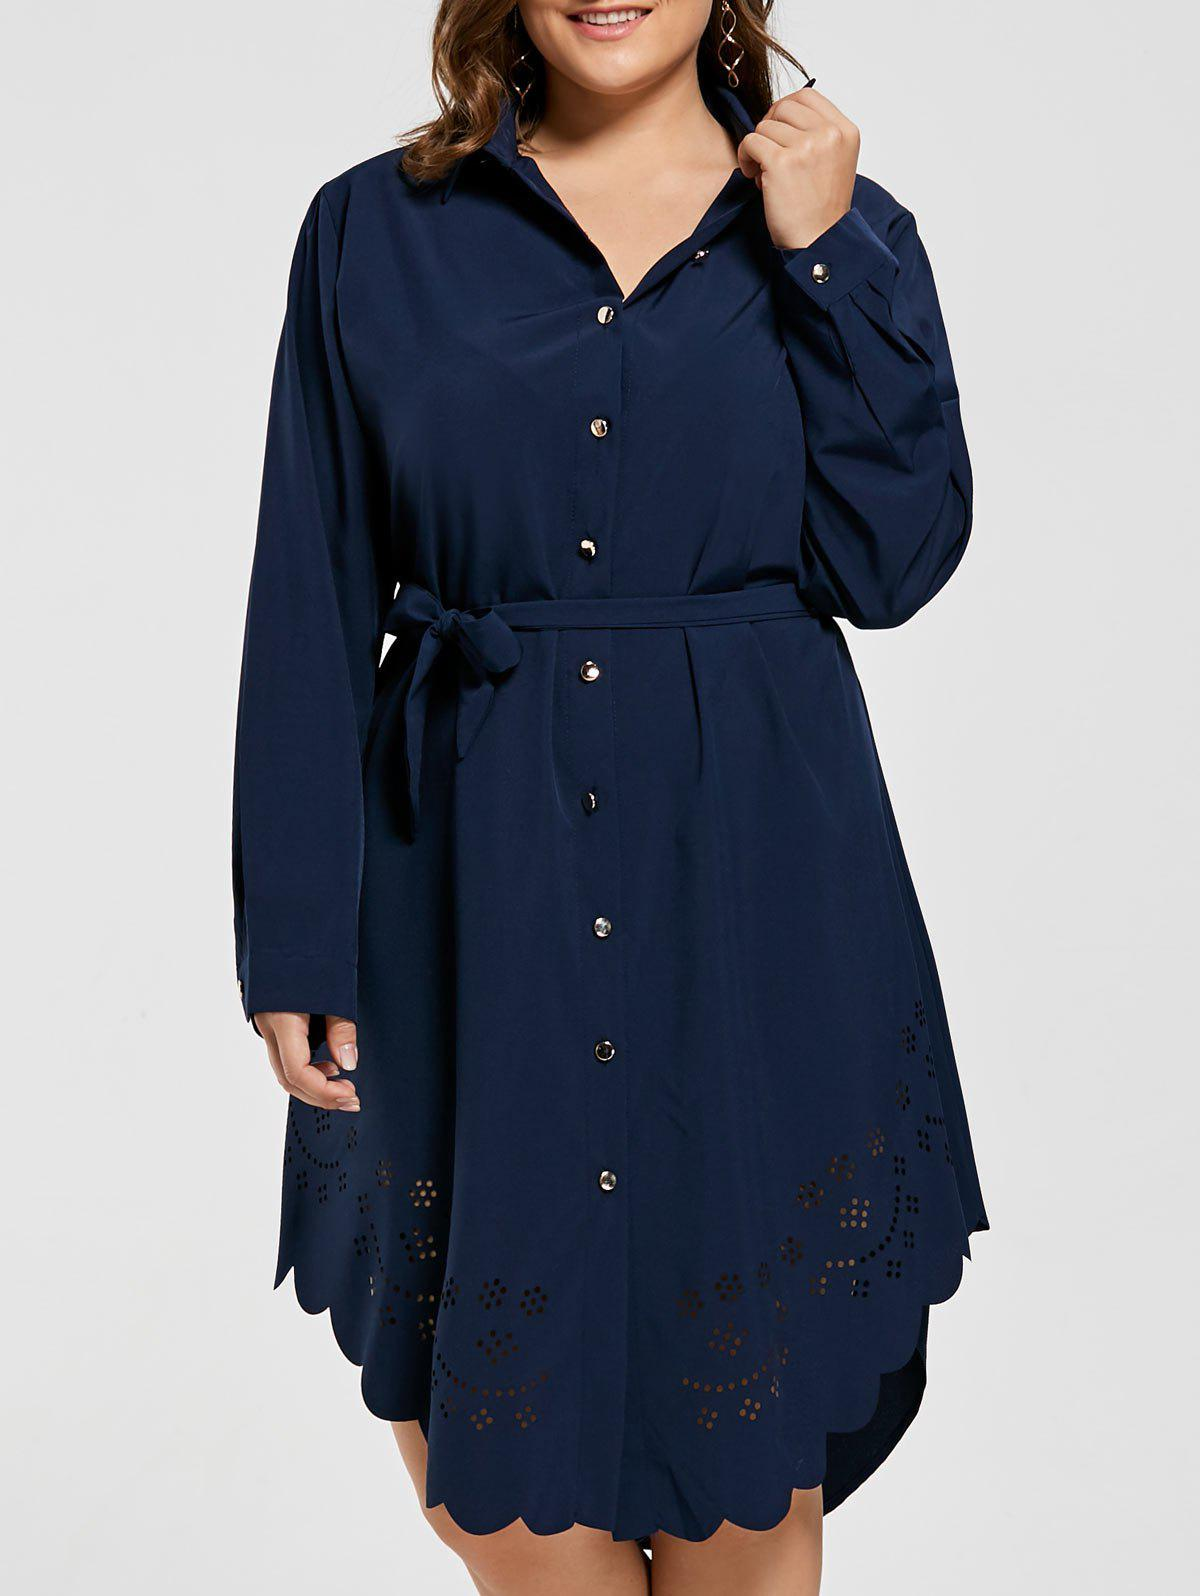 Openwork Scalloped Plus Size Button Down Shirt Dress